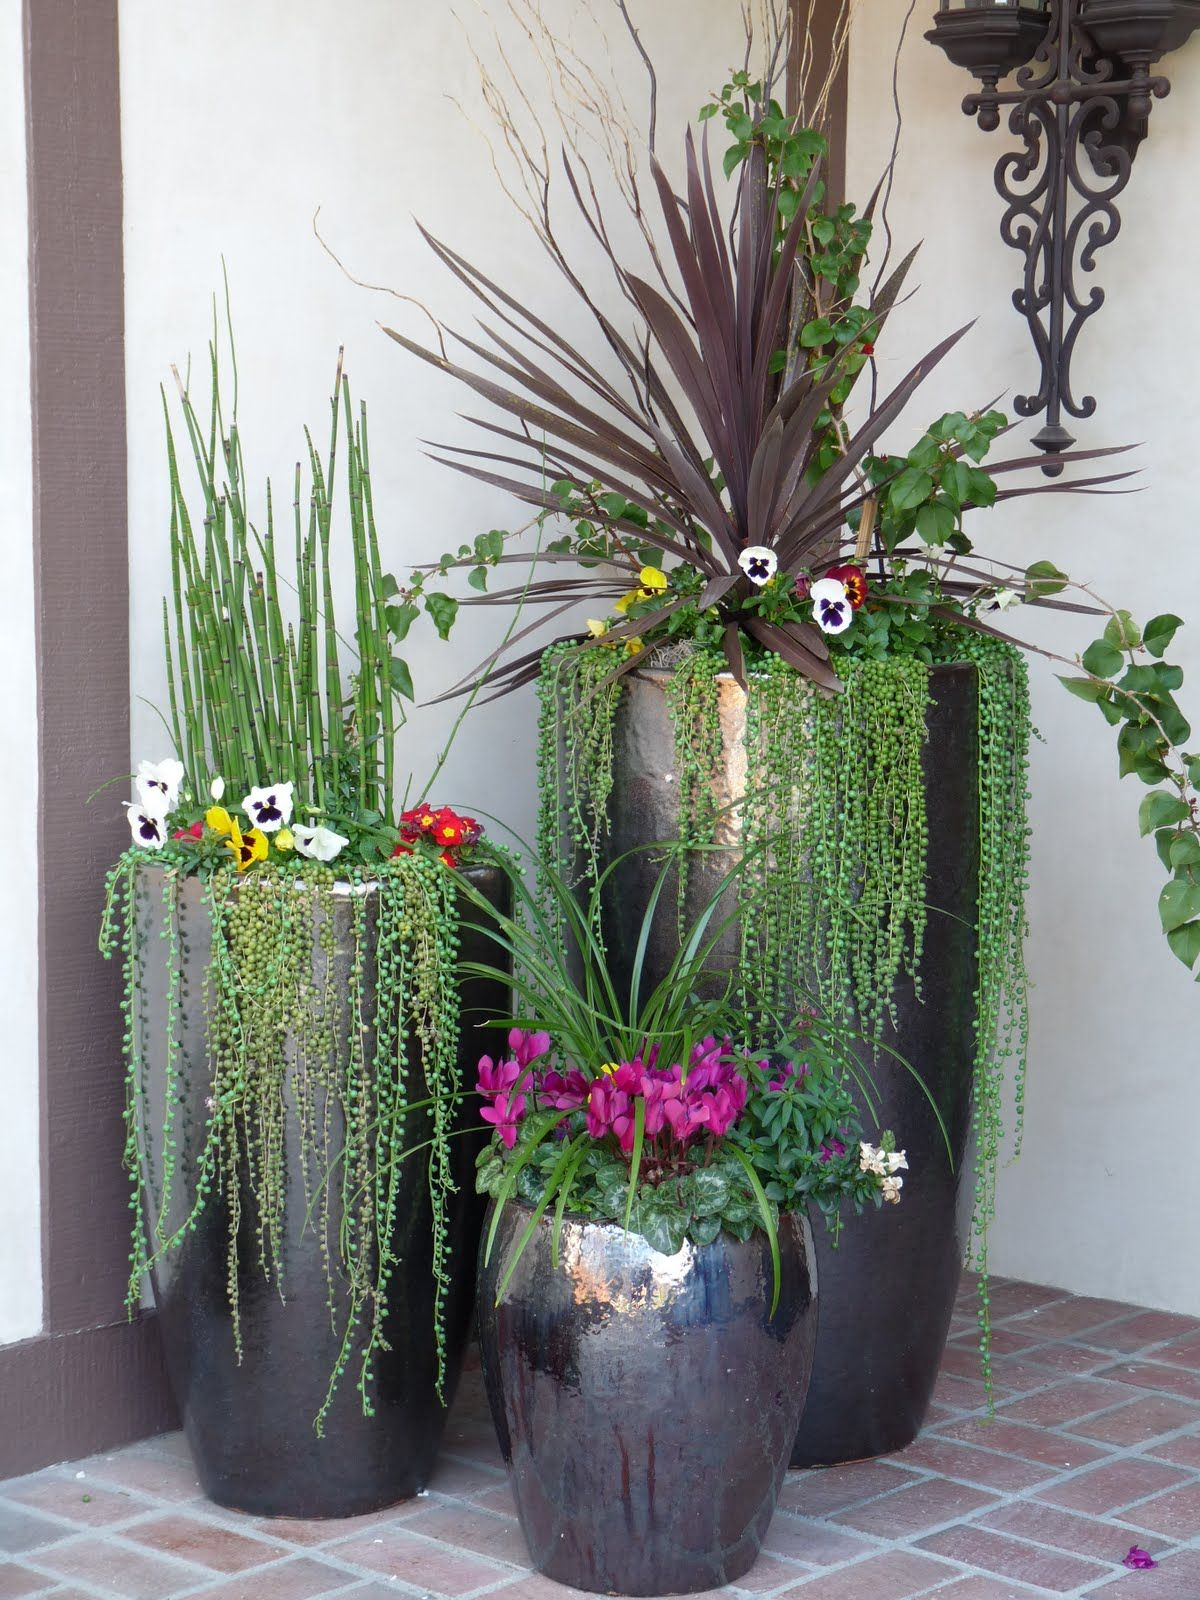 Plants will adorn our home potted plants outdoor ideas love this ...